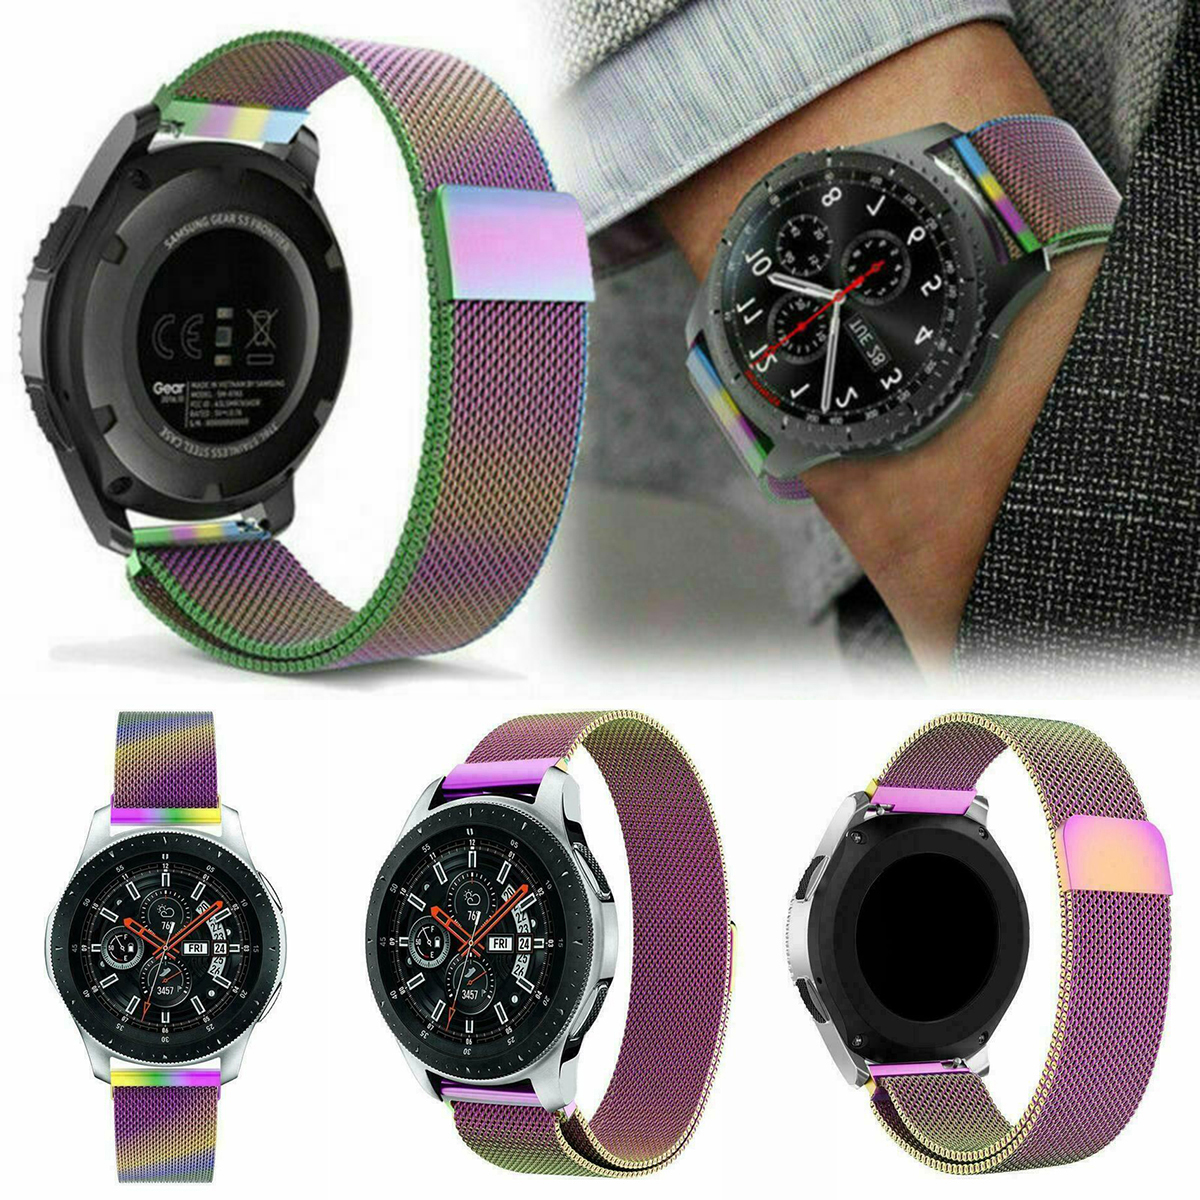 2019 New Fashion Magnetic Watch Band Replacement Strap For Samsung Galaxy Watch 42mm/46mm